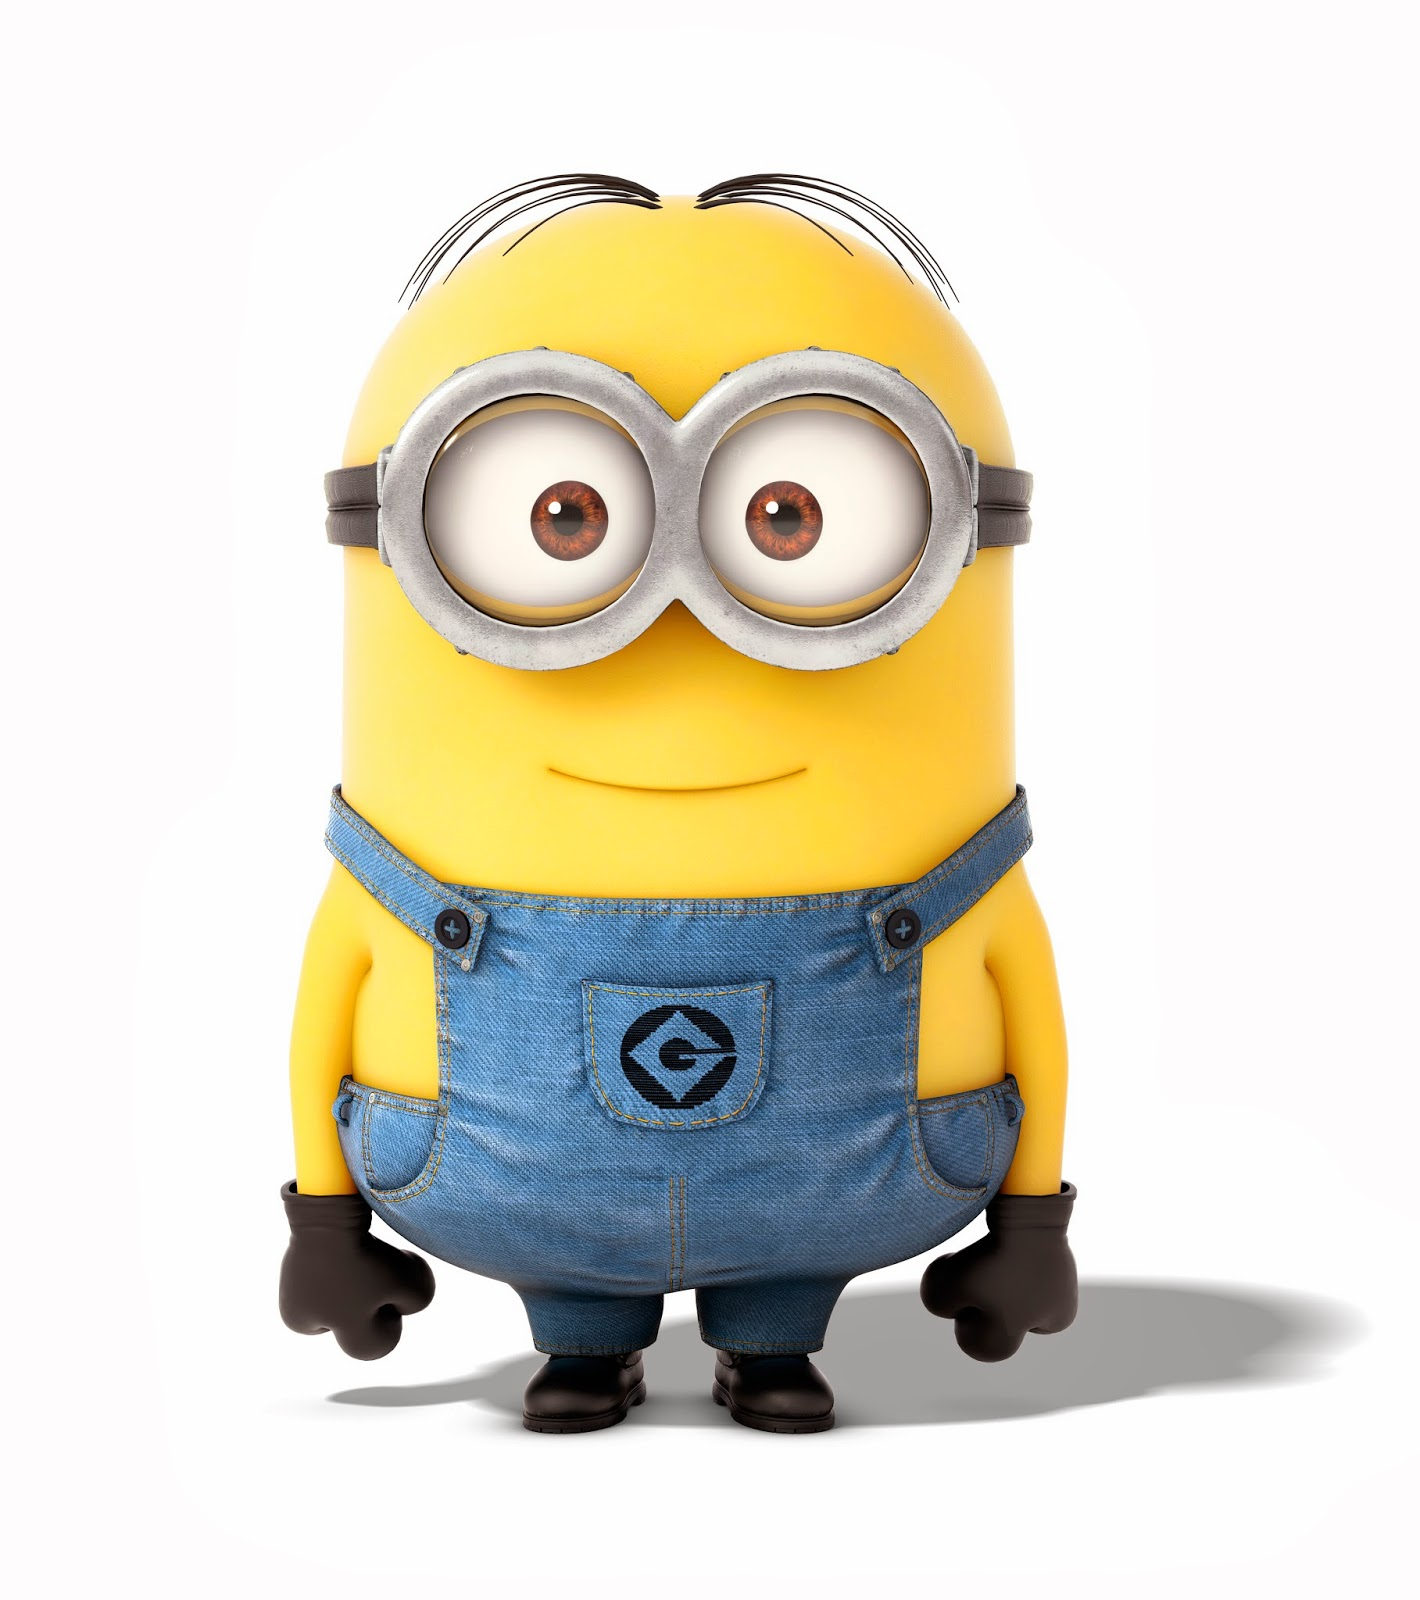 Minions Funny Free Images on on cartoon network dancing banana